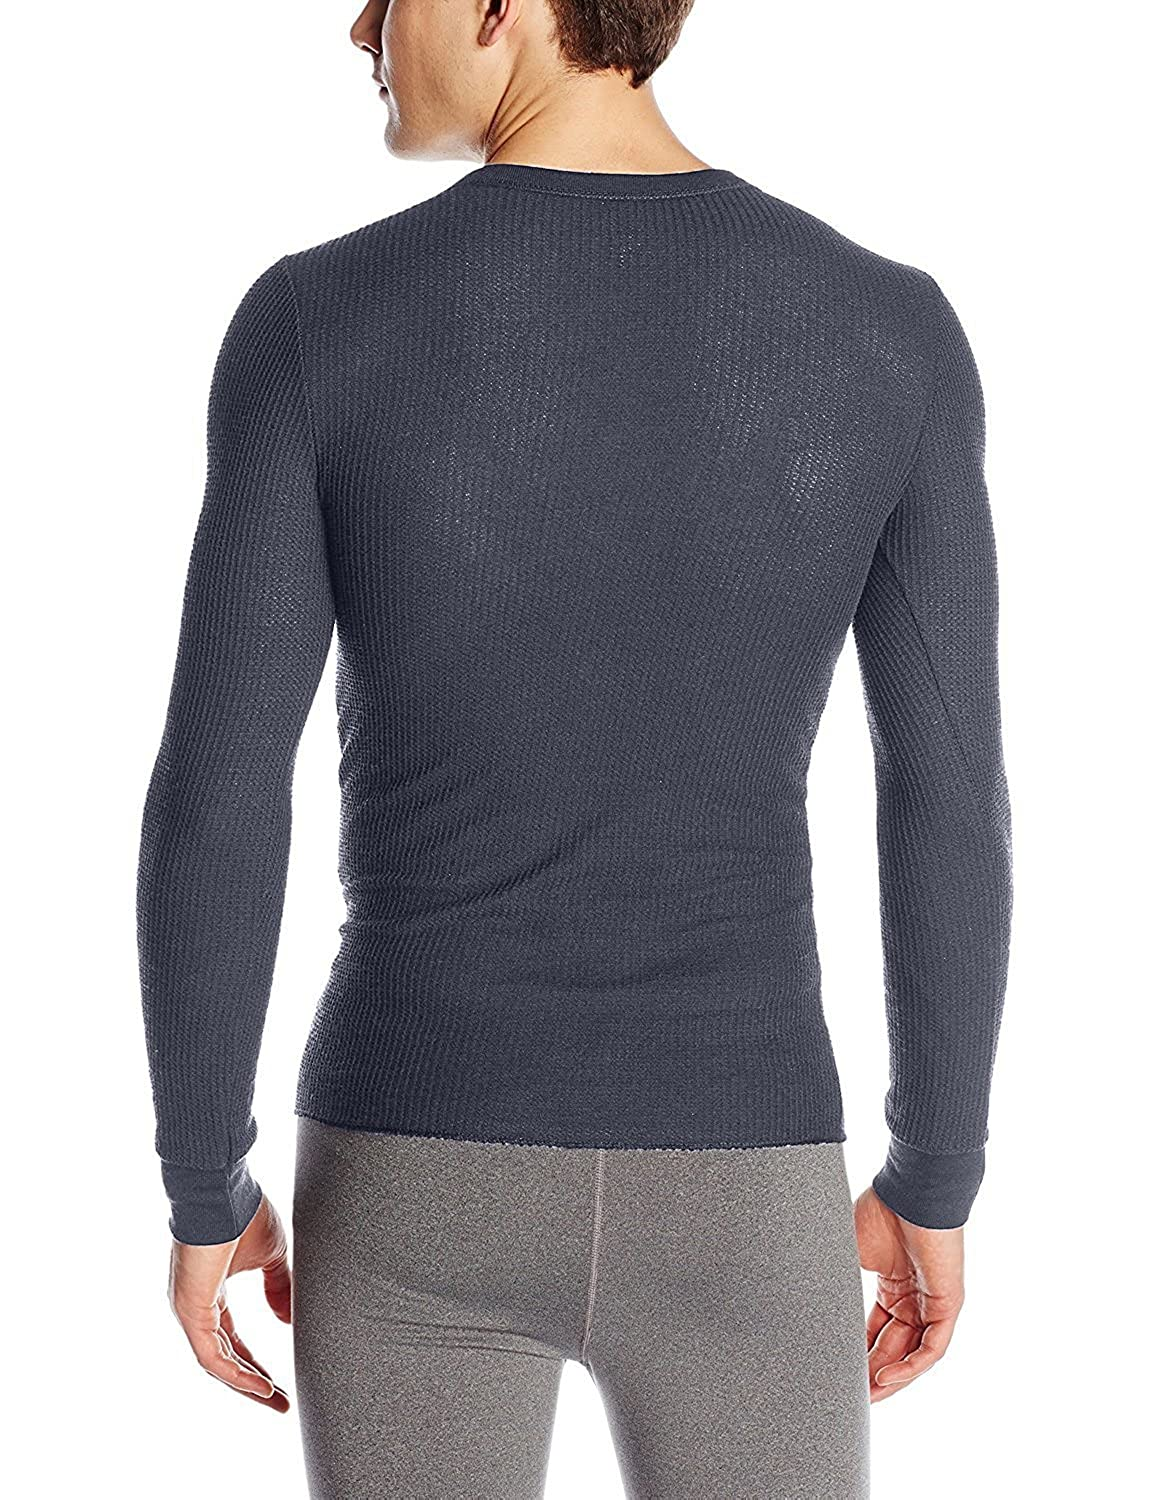 1 /& 2 Packs Fruit of the Loom Mens Classics Midweight Waffle Thermal Underwear Crew Top